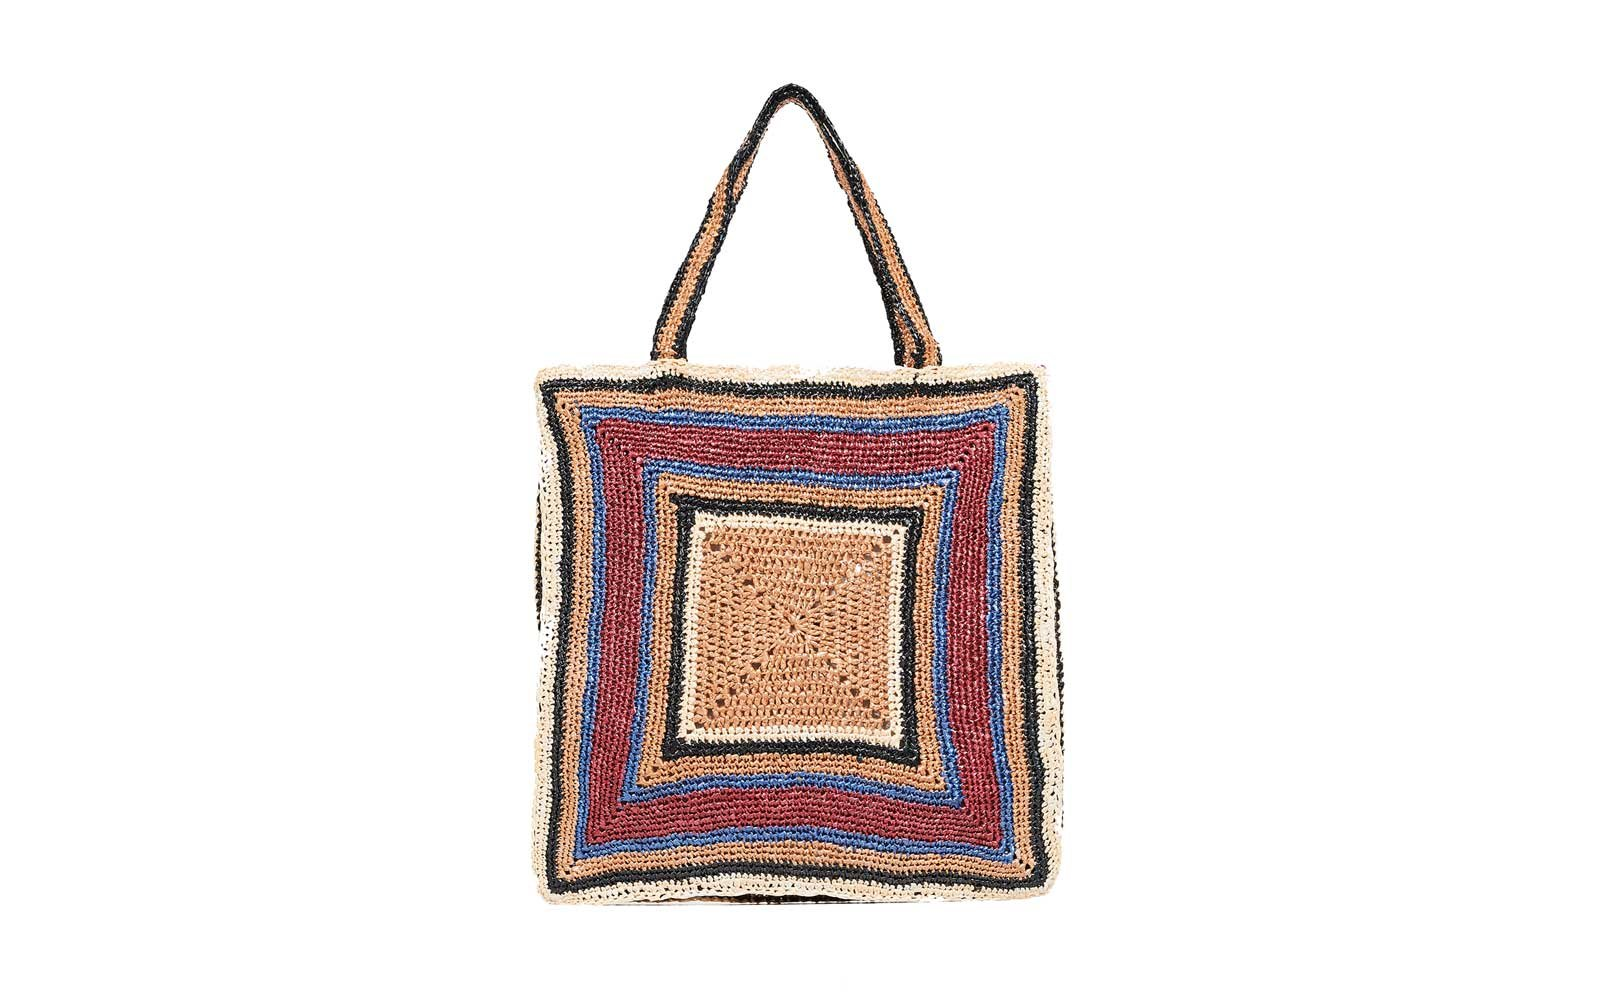 THE AMAZING STRAW BAGS FOR WOMEN IN THIS SESSION OF SUMMER 14